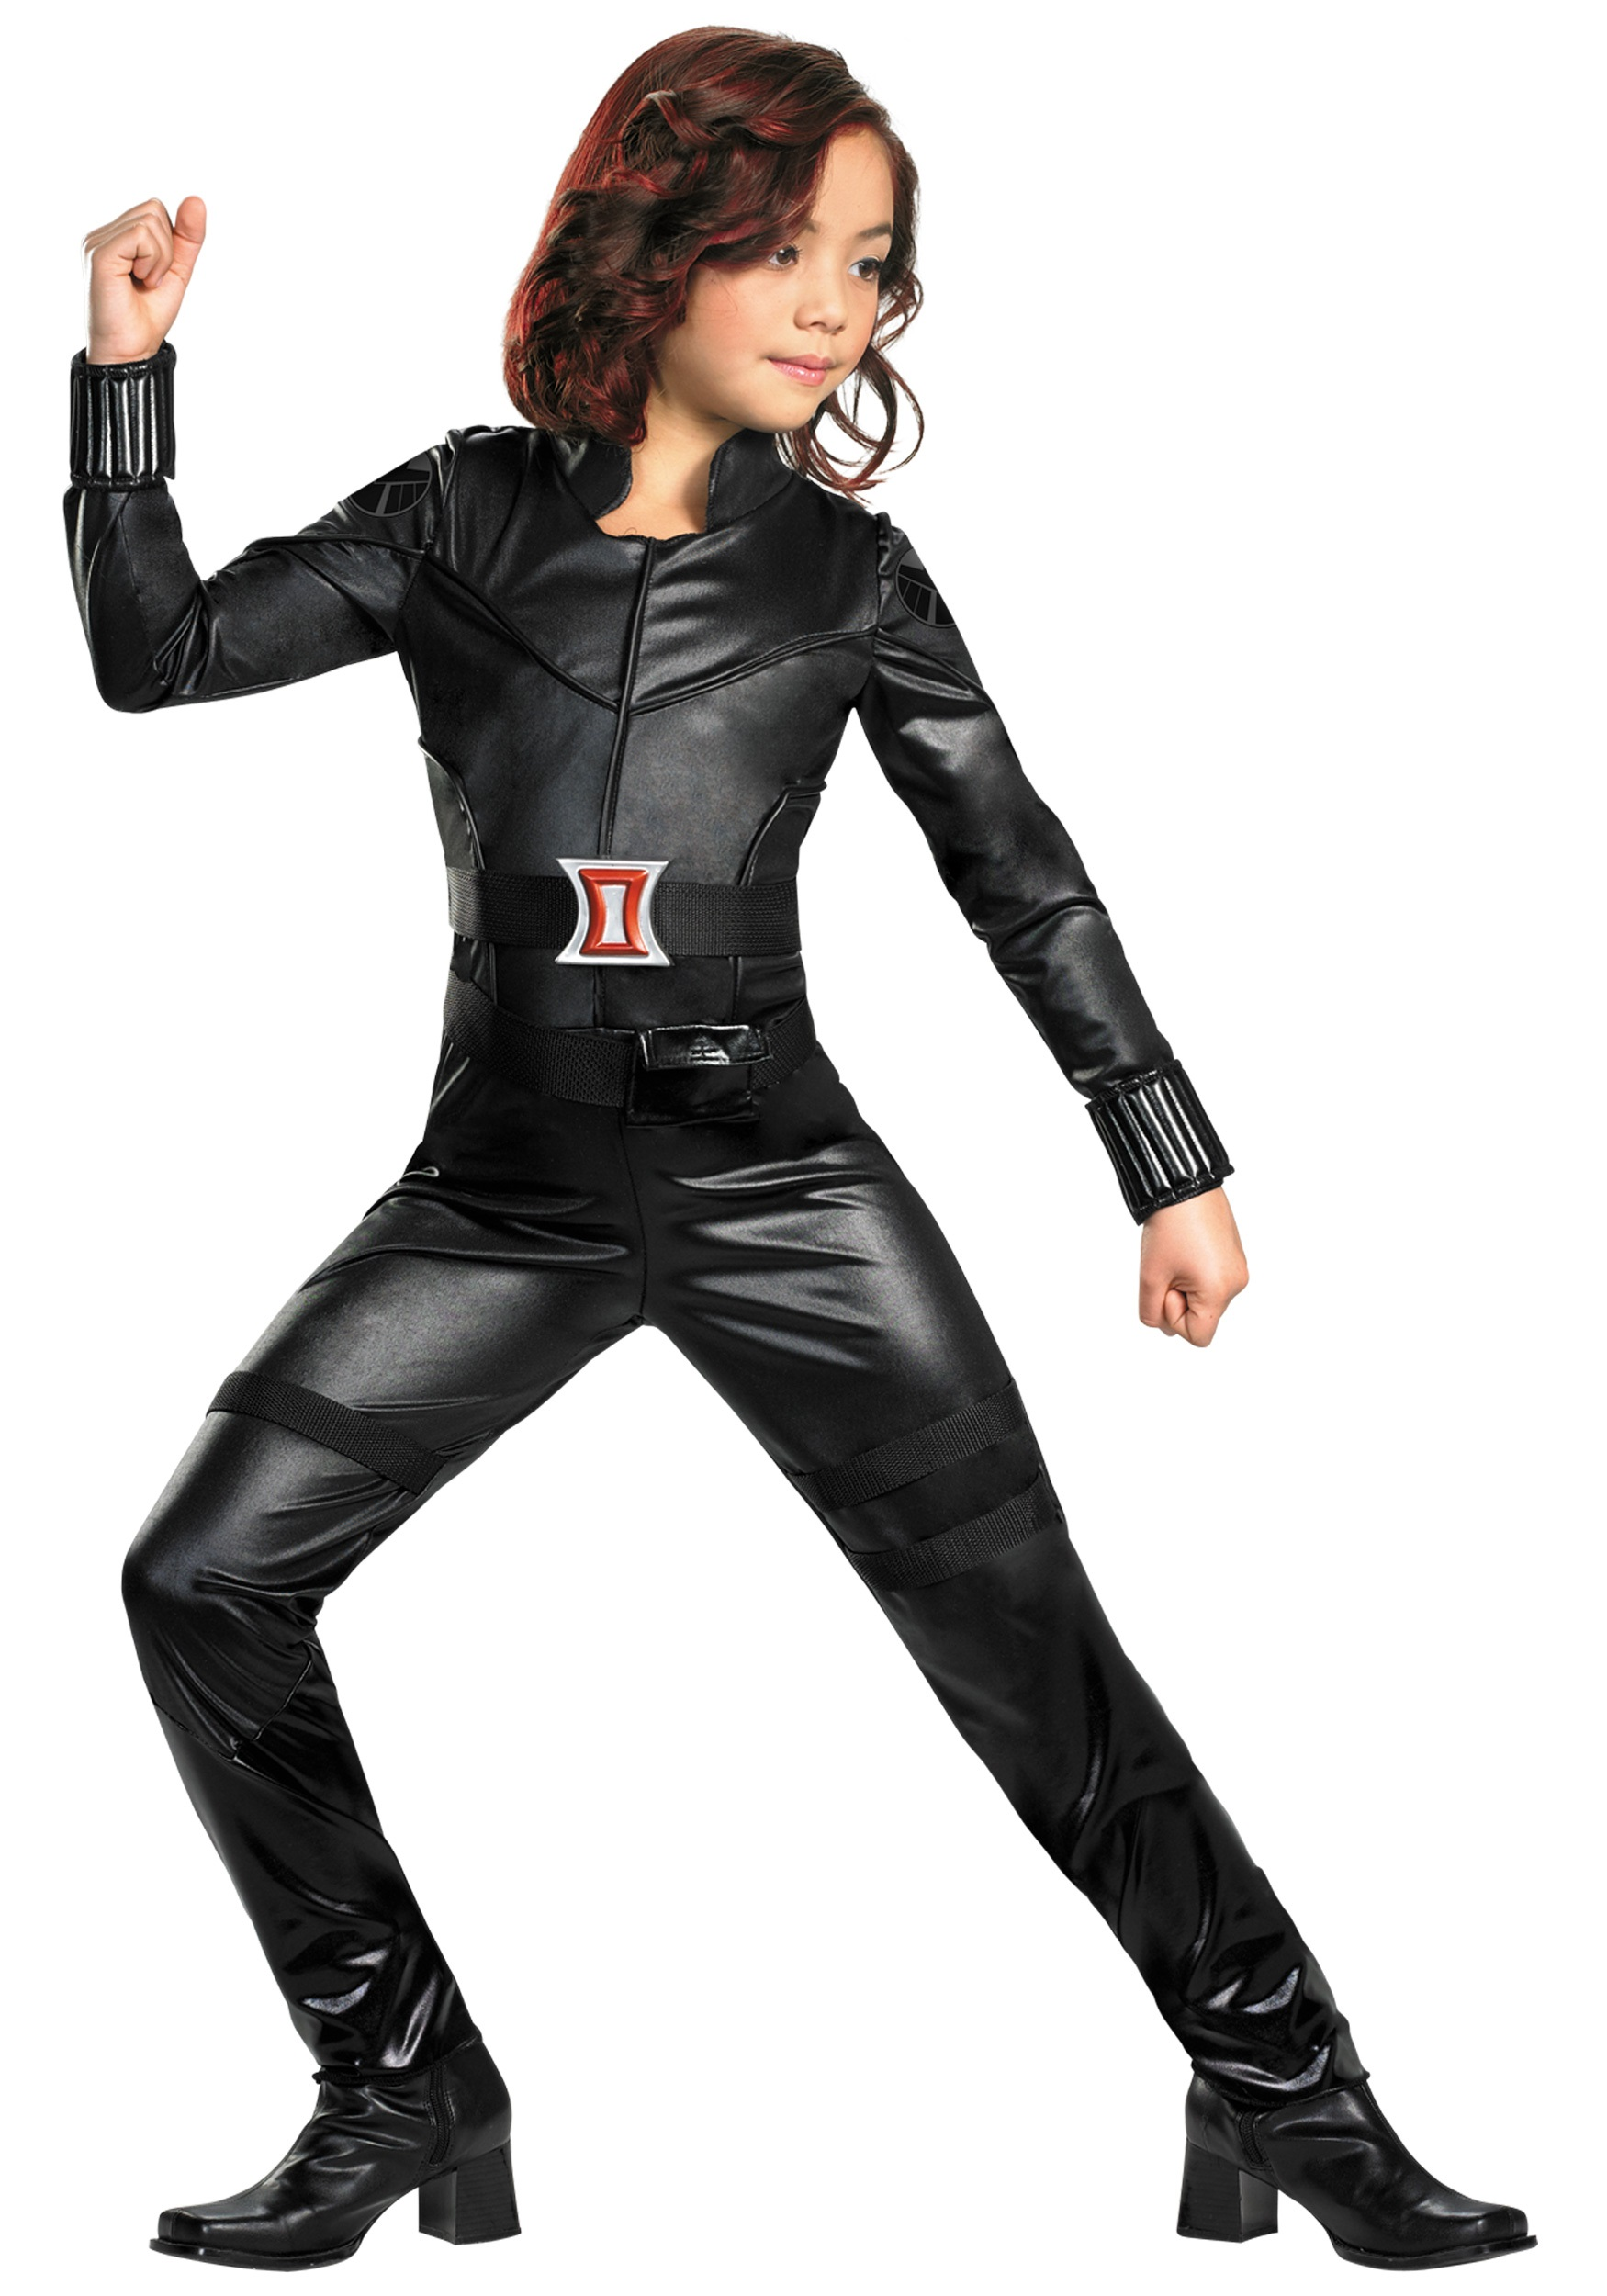 Girls Deluxe Black Widow Costume  sc 1 st  Halloween Costumes & Girls Deluxe Black Widow Costume - Halloween Costumes